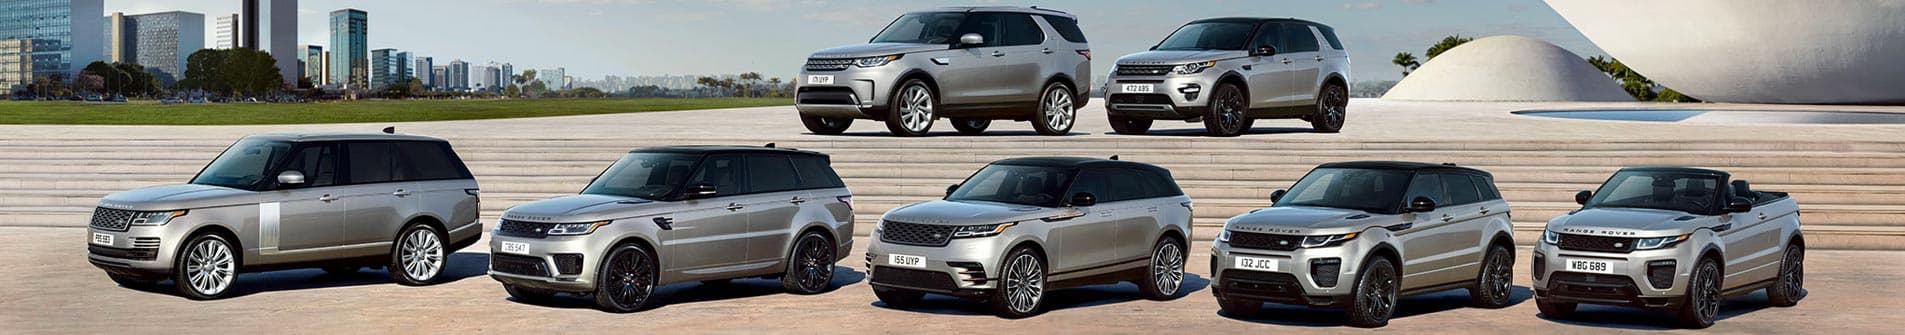 Land Rover Shop Virtual Feature